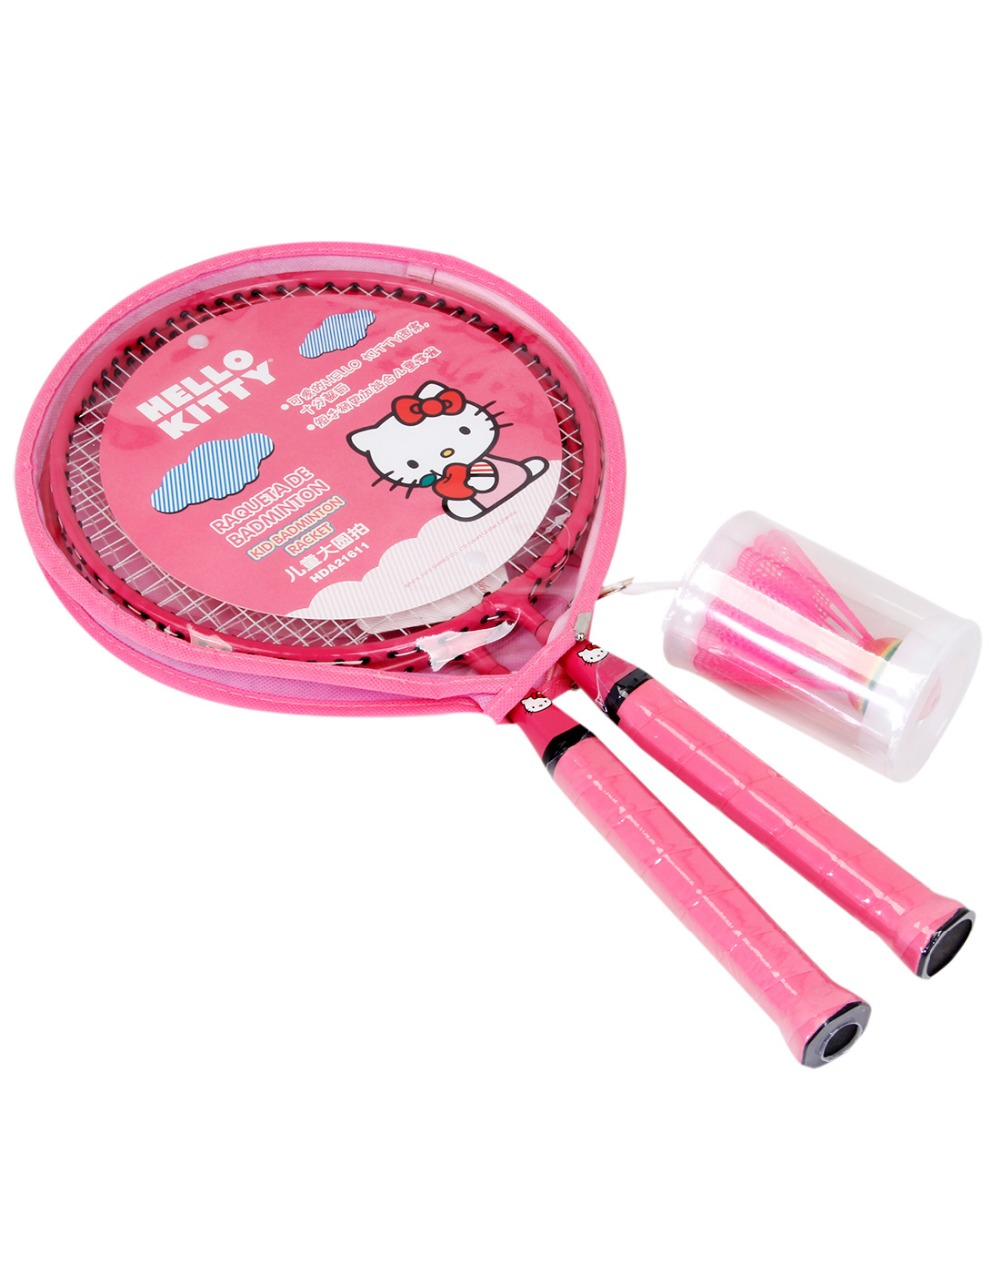 HELLO KITTY Badminton Rackets Sports cheap Kids Cartoon racket Set Training children 44cm fit 3-12 years old Badminton Rackets (1)